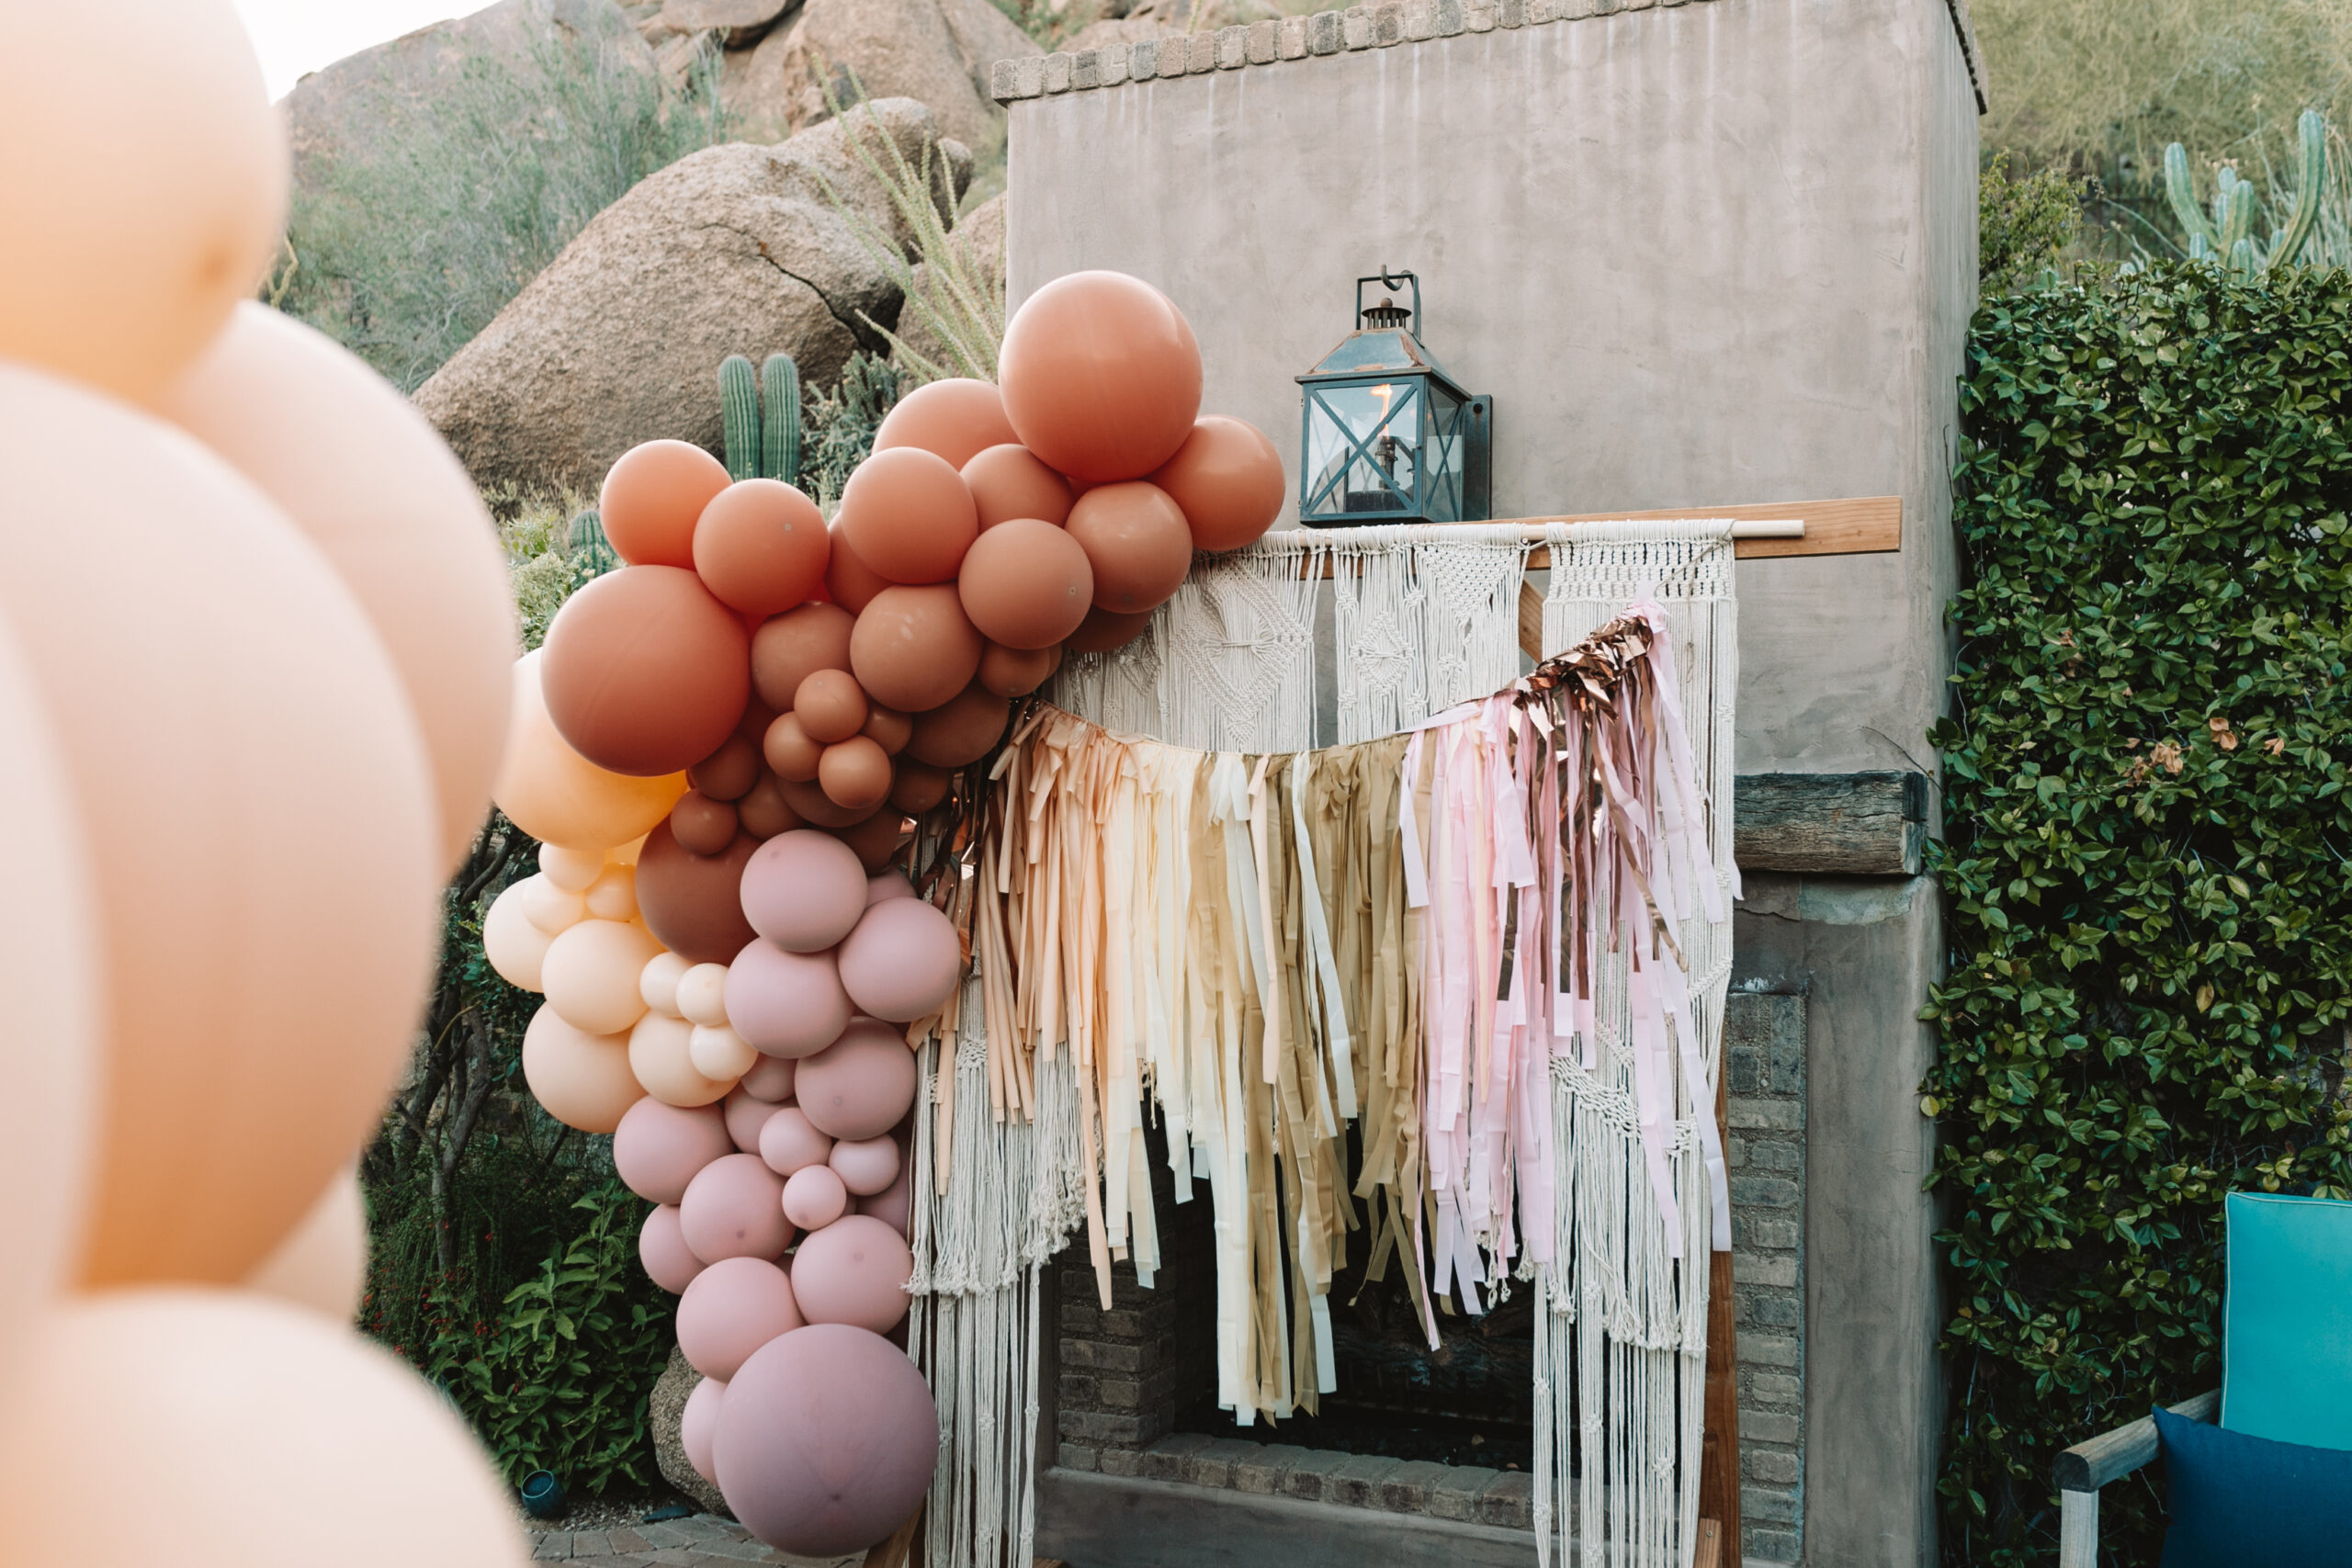 the prettiest decorations at our magical boho chic baby shower including this macrame hanging, balloon garland, and tissue tassel hanging #thelovedesignedlife #bohochickbabyshower #desertvibes #babyshowerideas